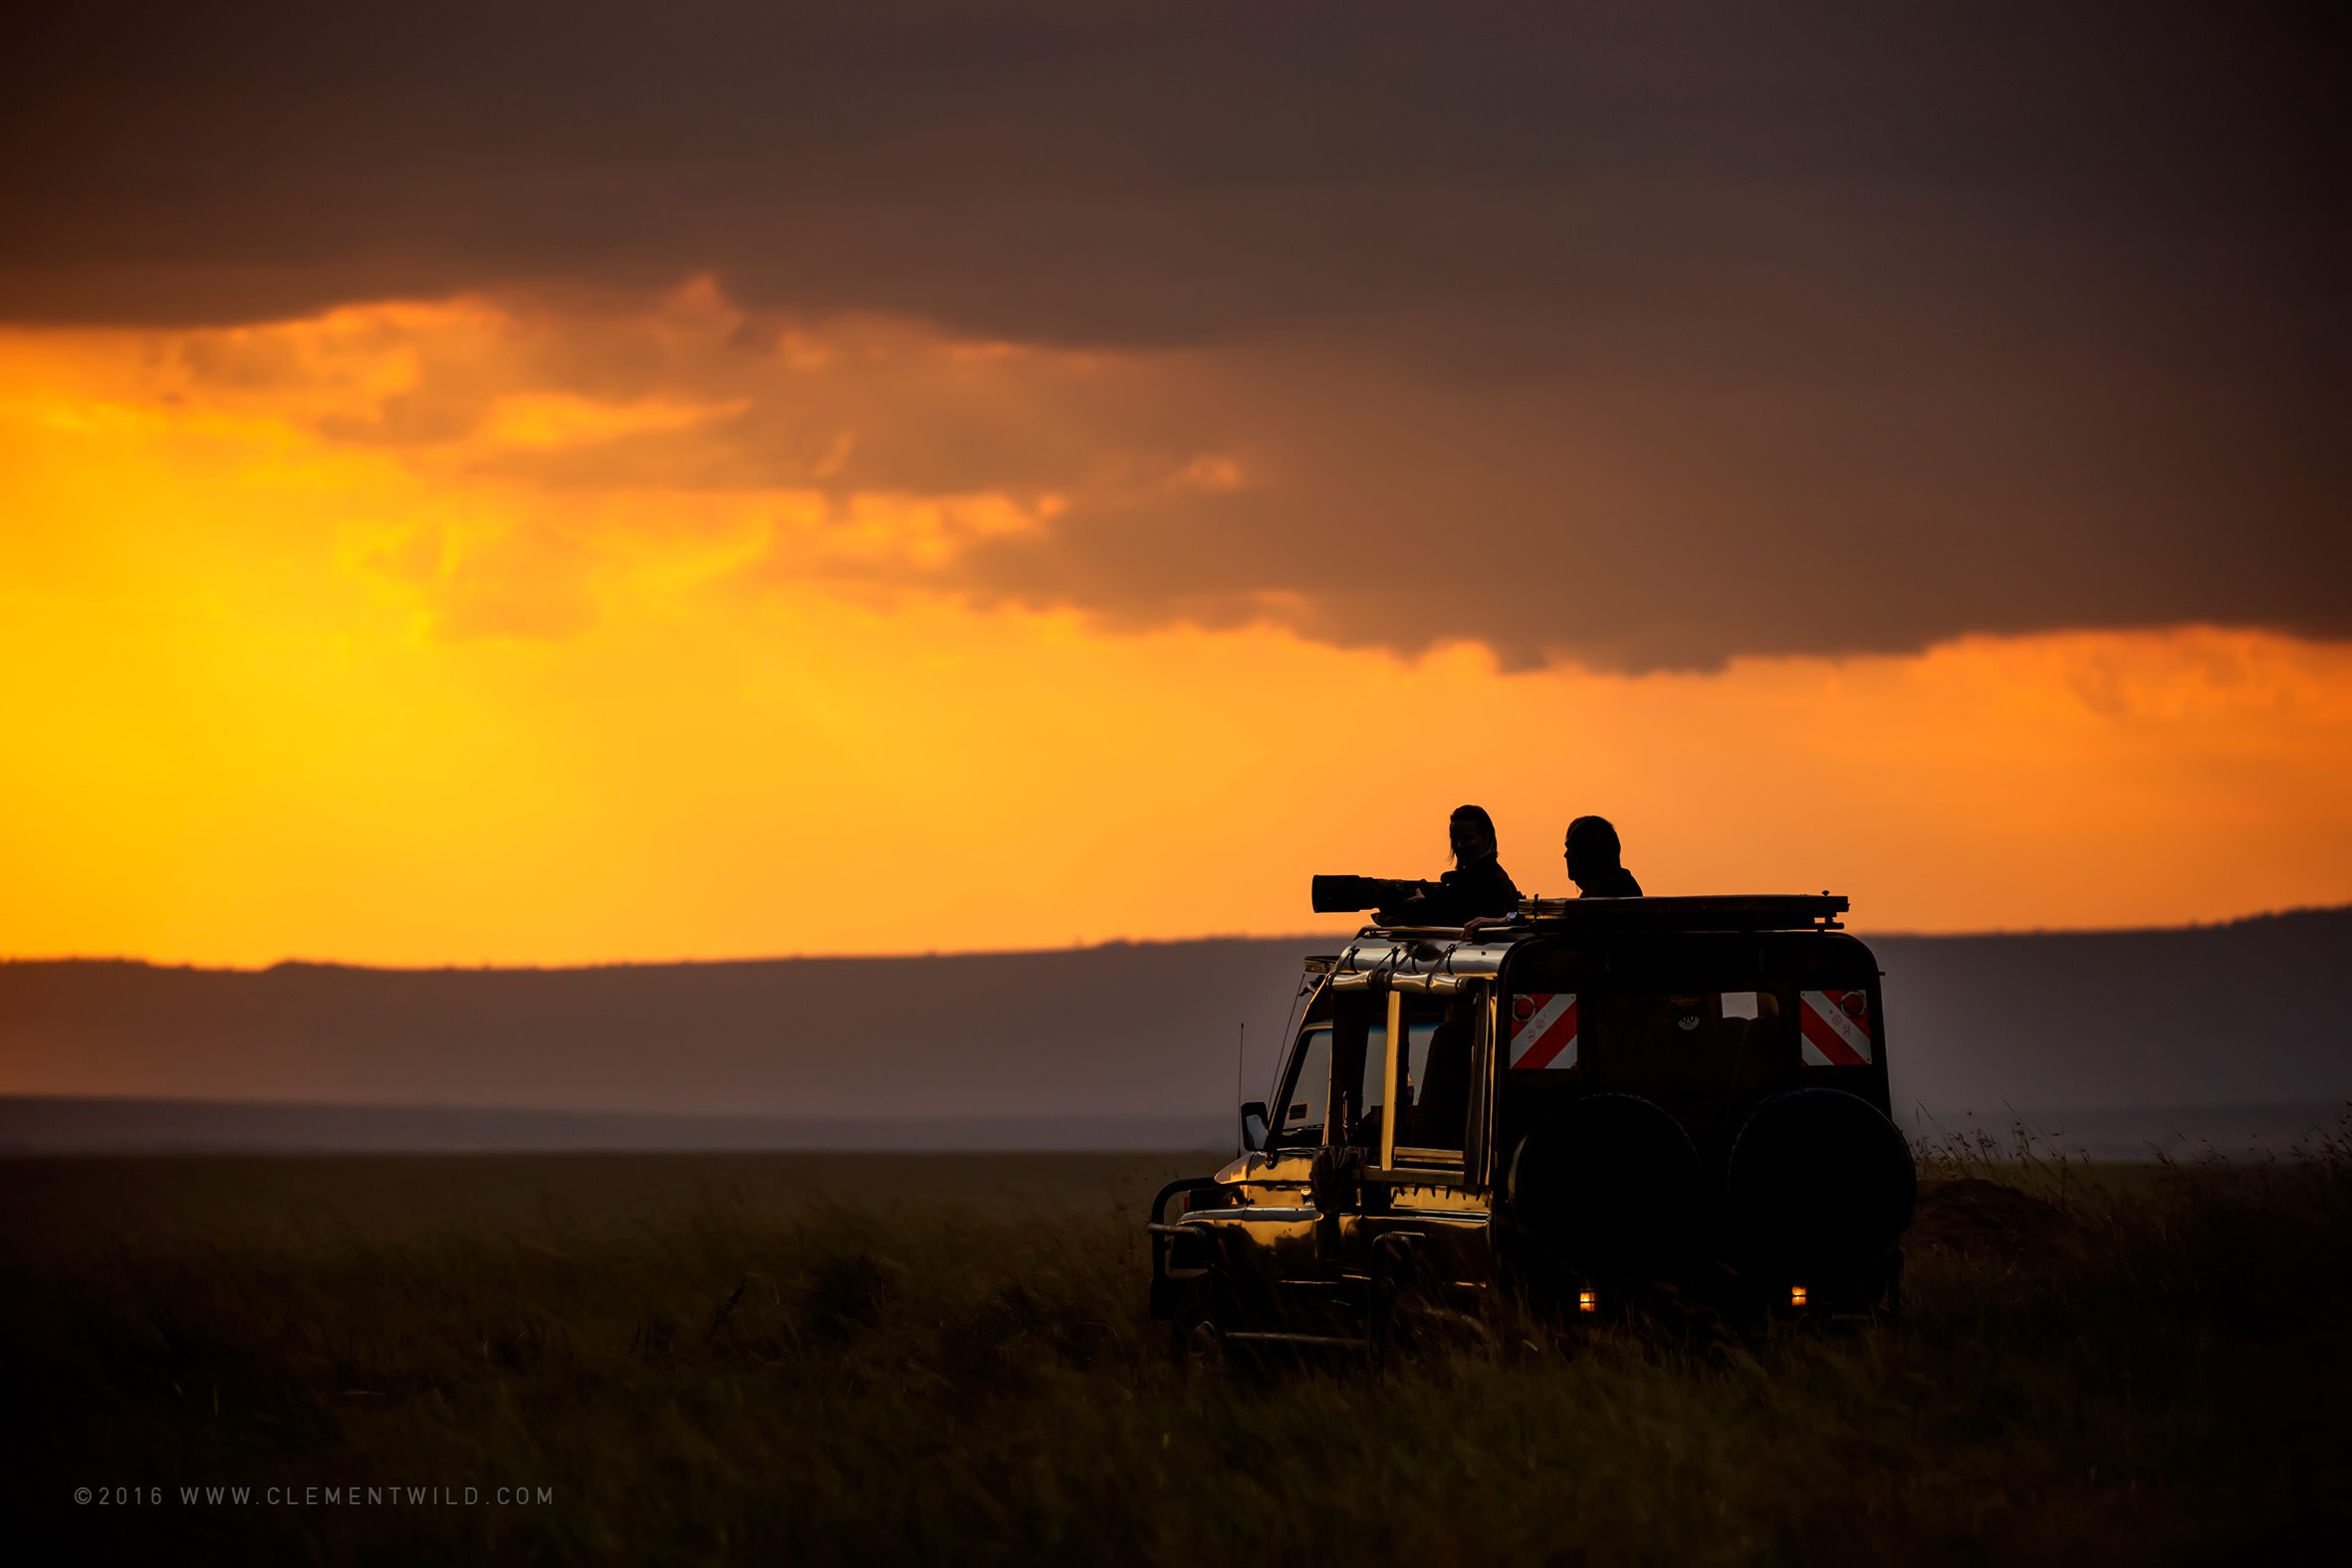 Great Wildebeest Migration, Wildlife Photography, Photographic Safaris, Clement Wild, Masai Mara